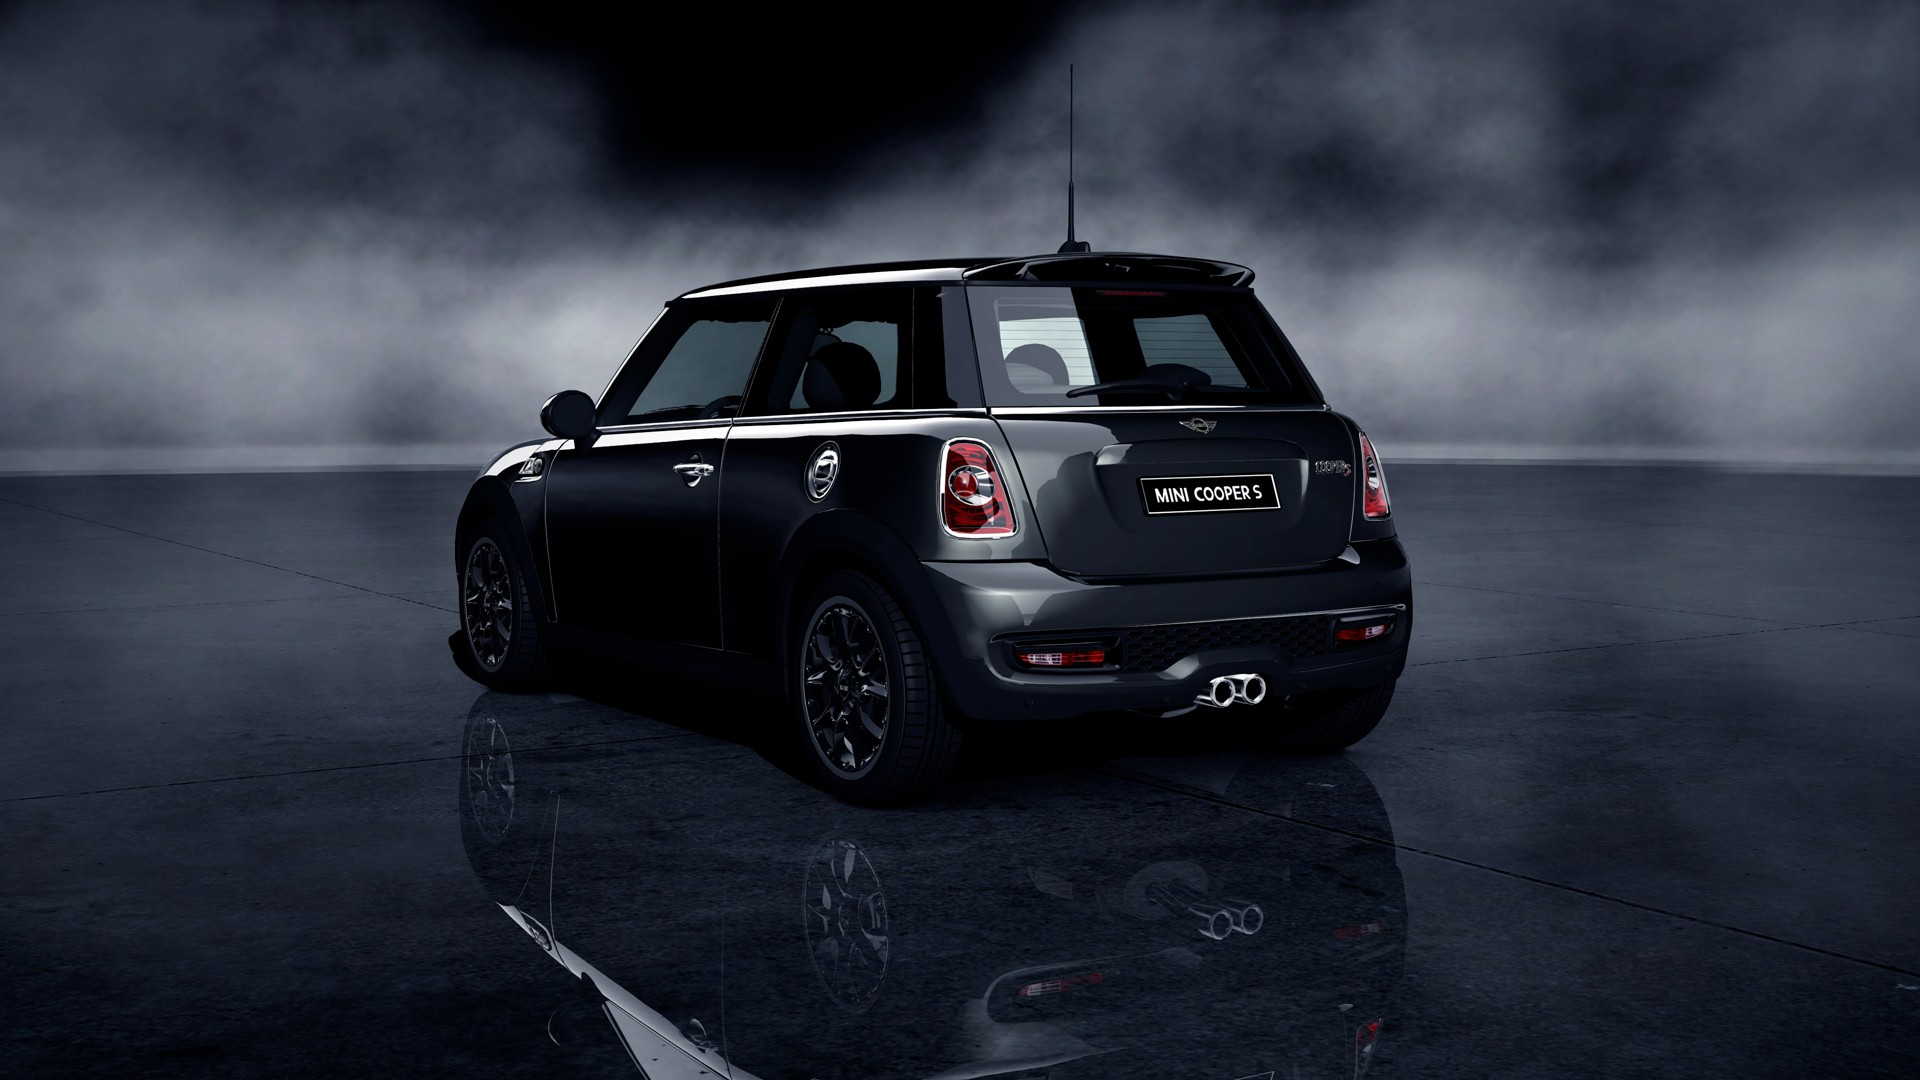 Download Mini Cooper Wallpaper 1920x1080 Wallpoper 301757 1920x1080